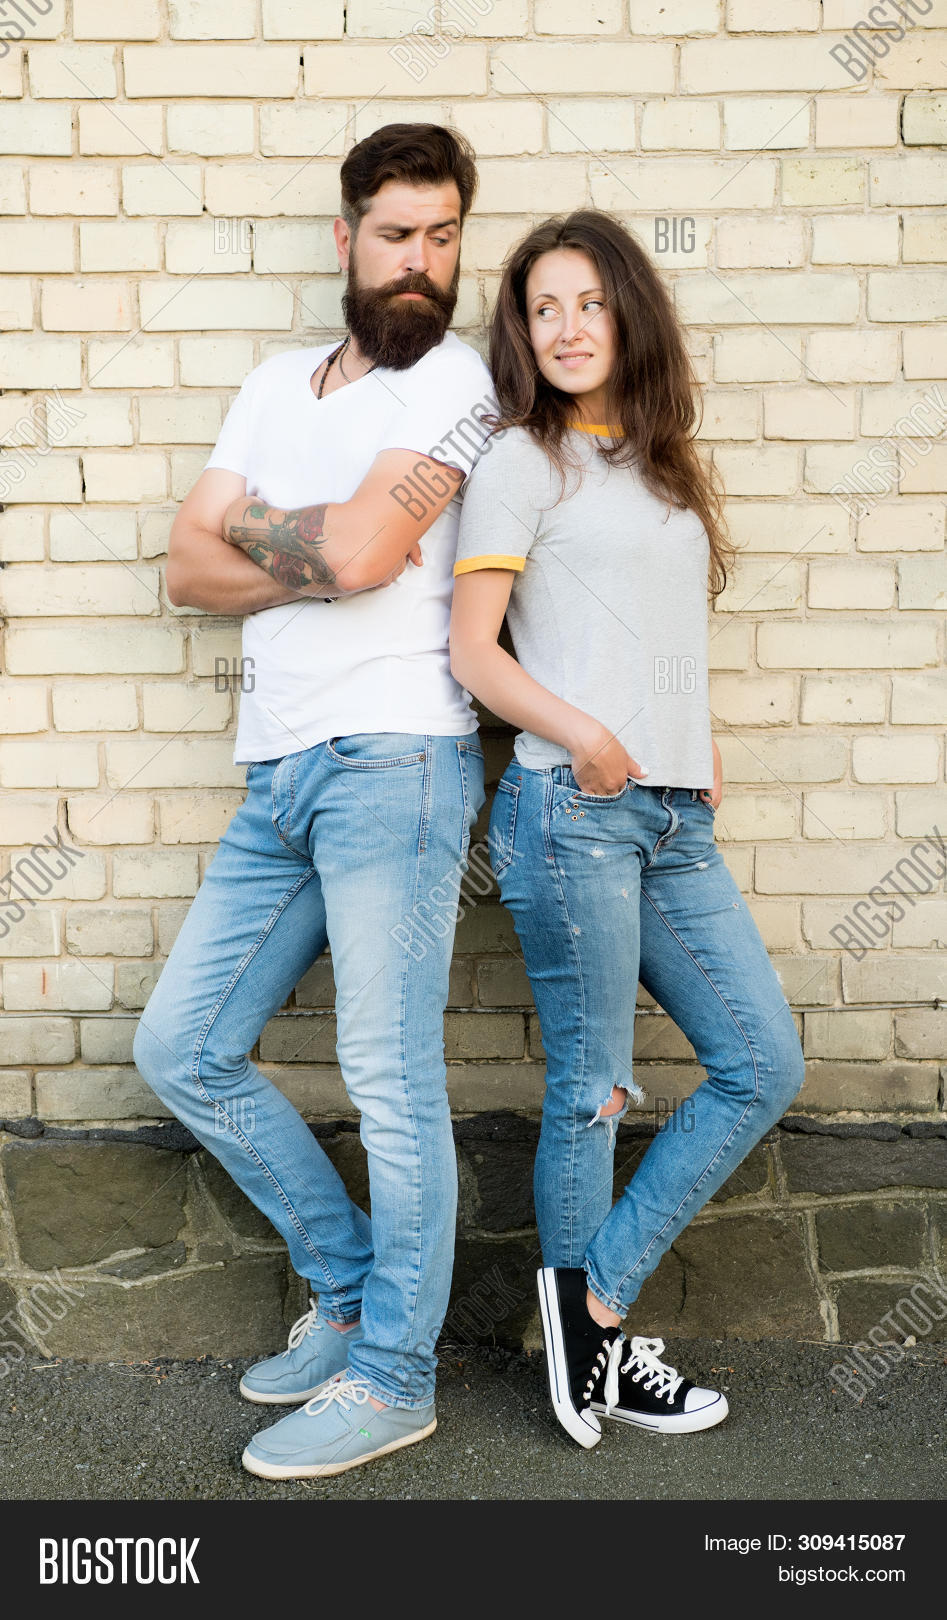 Urban Youth On Date. Casual Meeting. Man Bearded And Girl Friends. Couple In Love Romantic Date Hudd